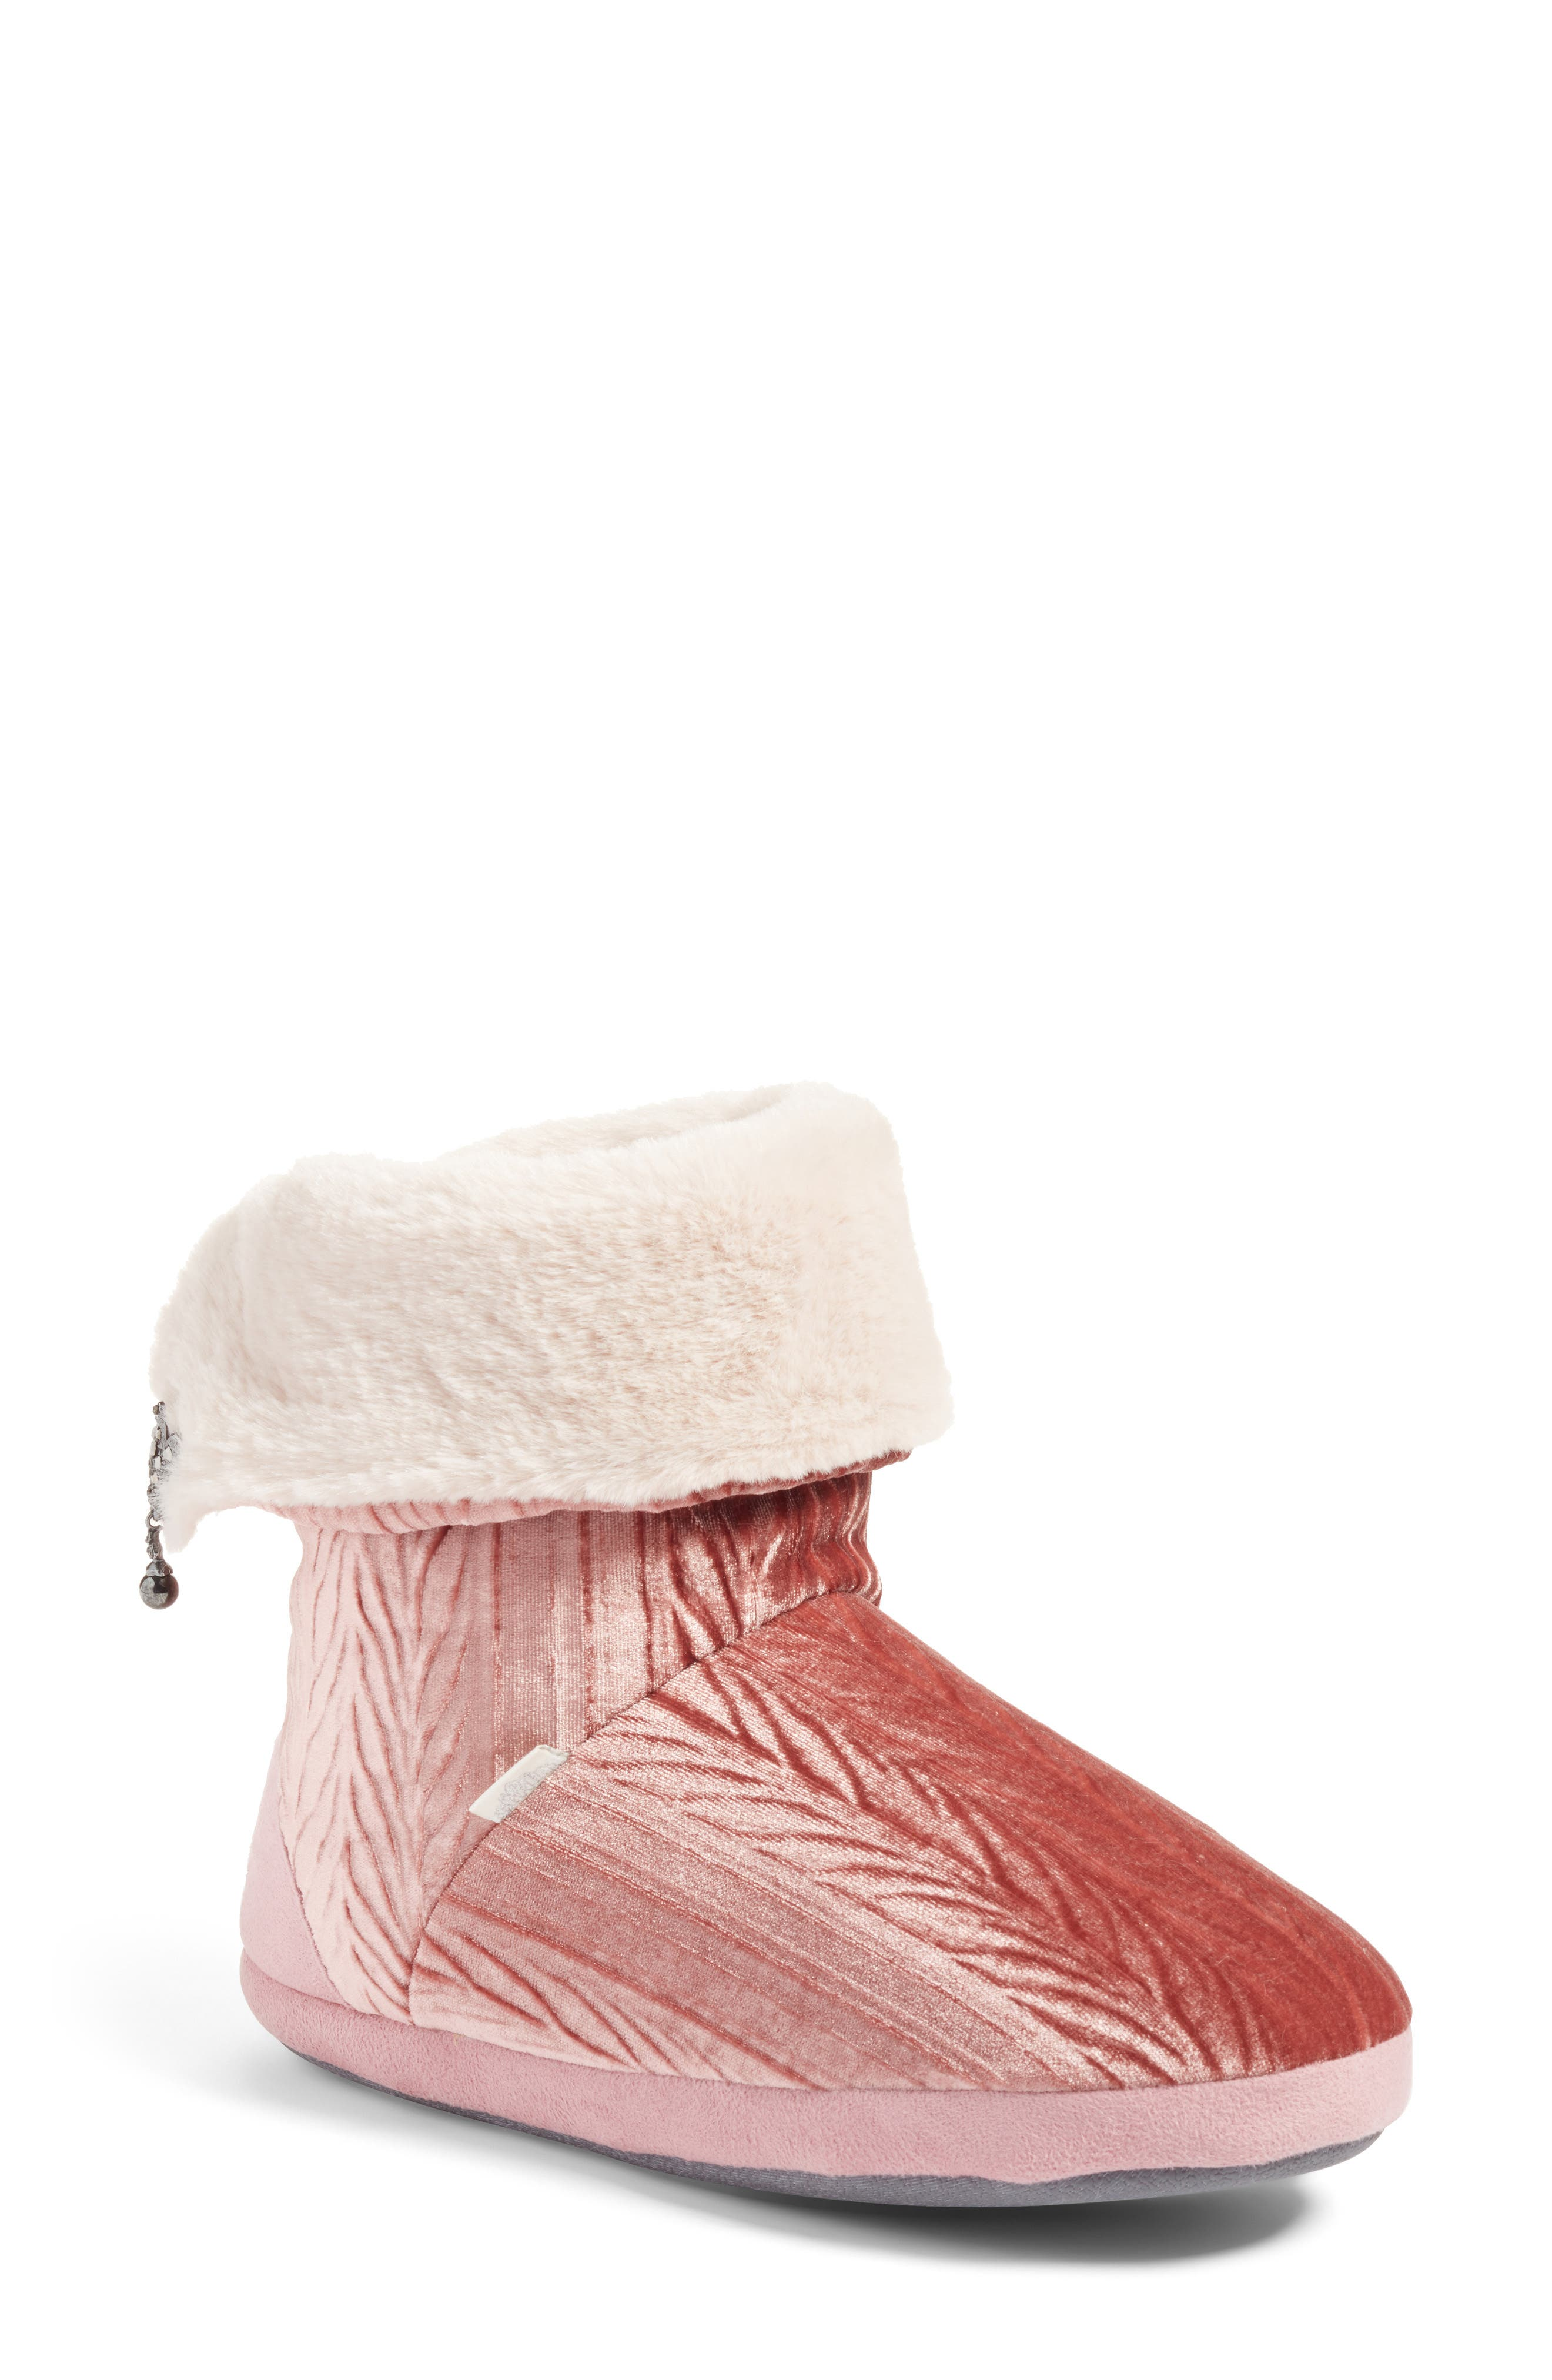 Velvet Bootie Slipper,                             Main thumbnail 1, color,                             Pink